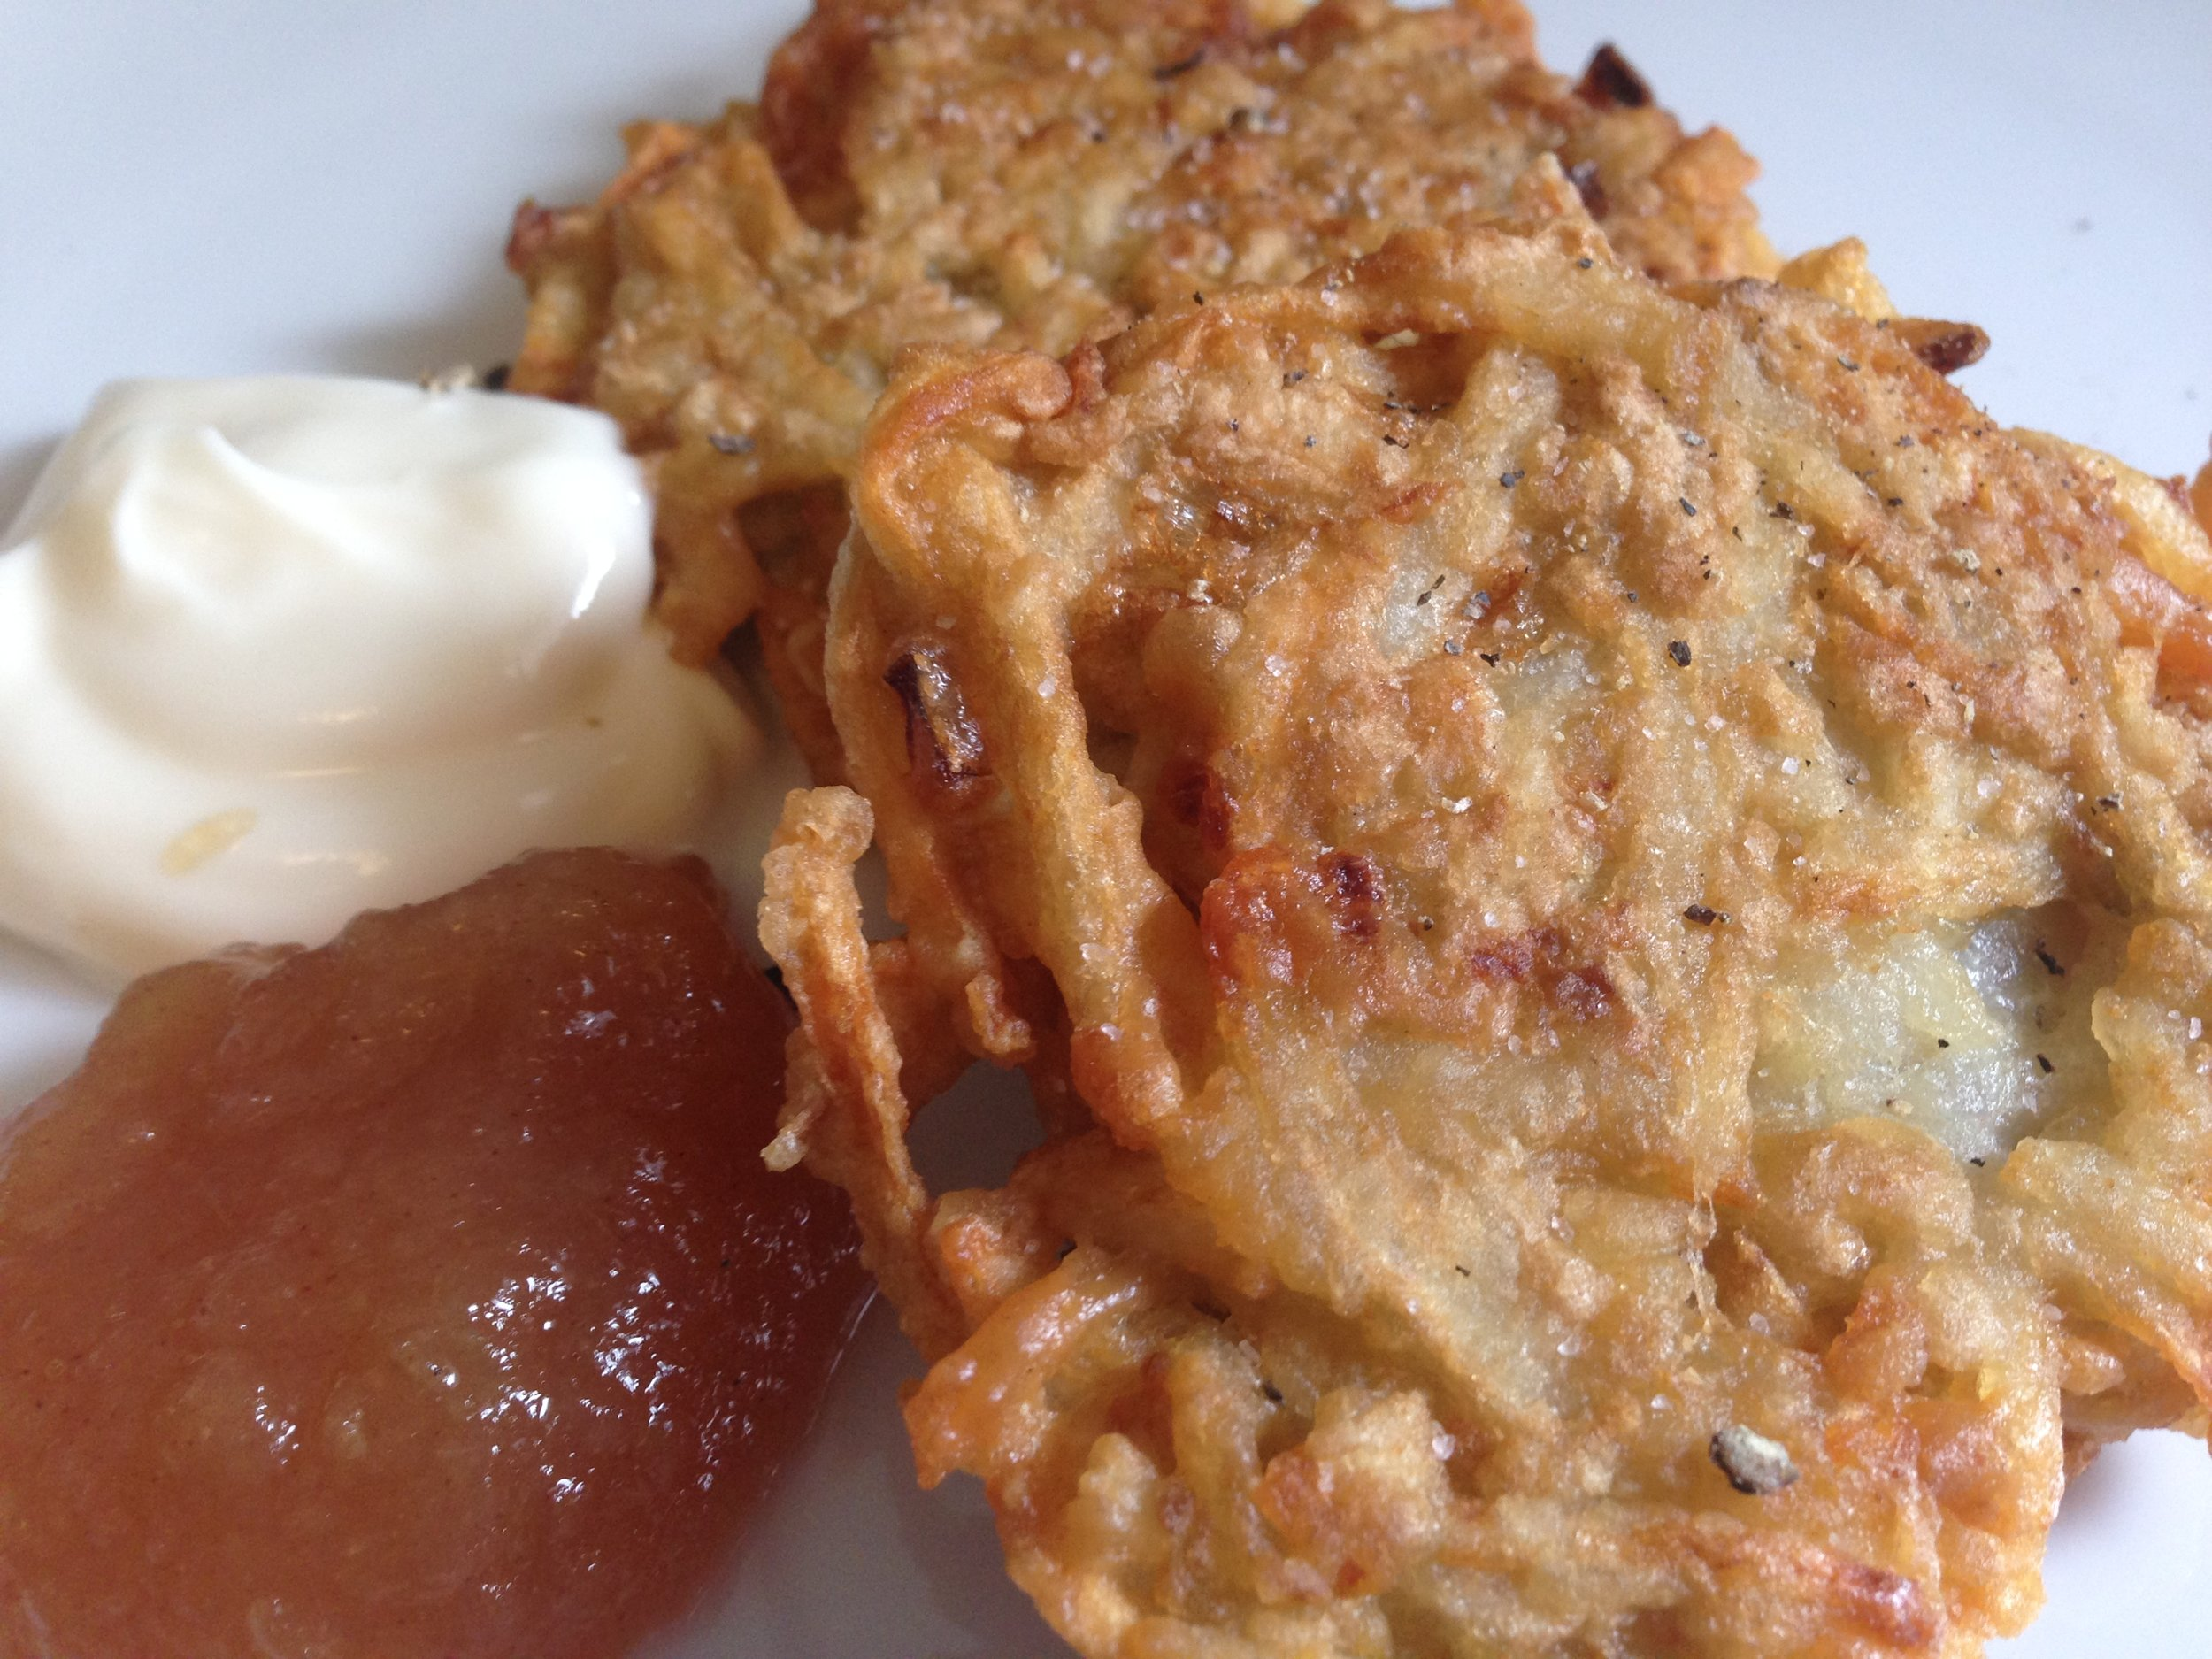 Potato Pancakes, a.k.a. Latkes with Apple Butter and Sour Cream